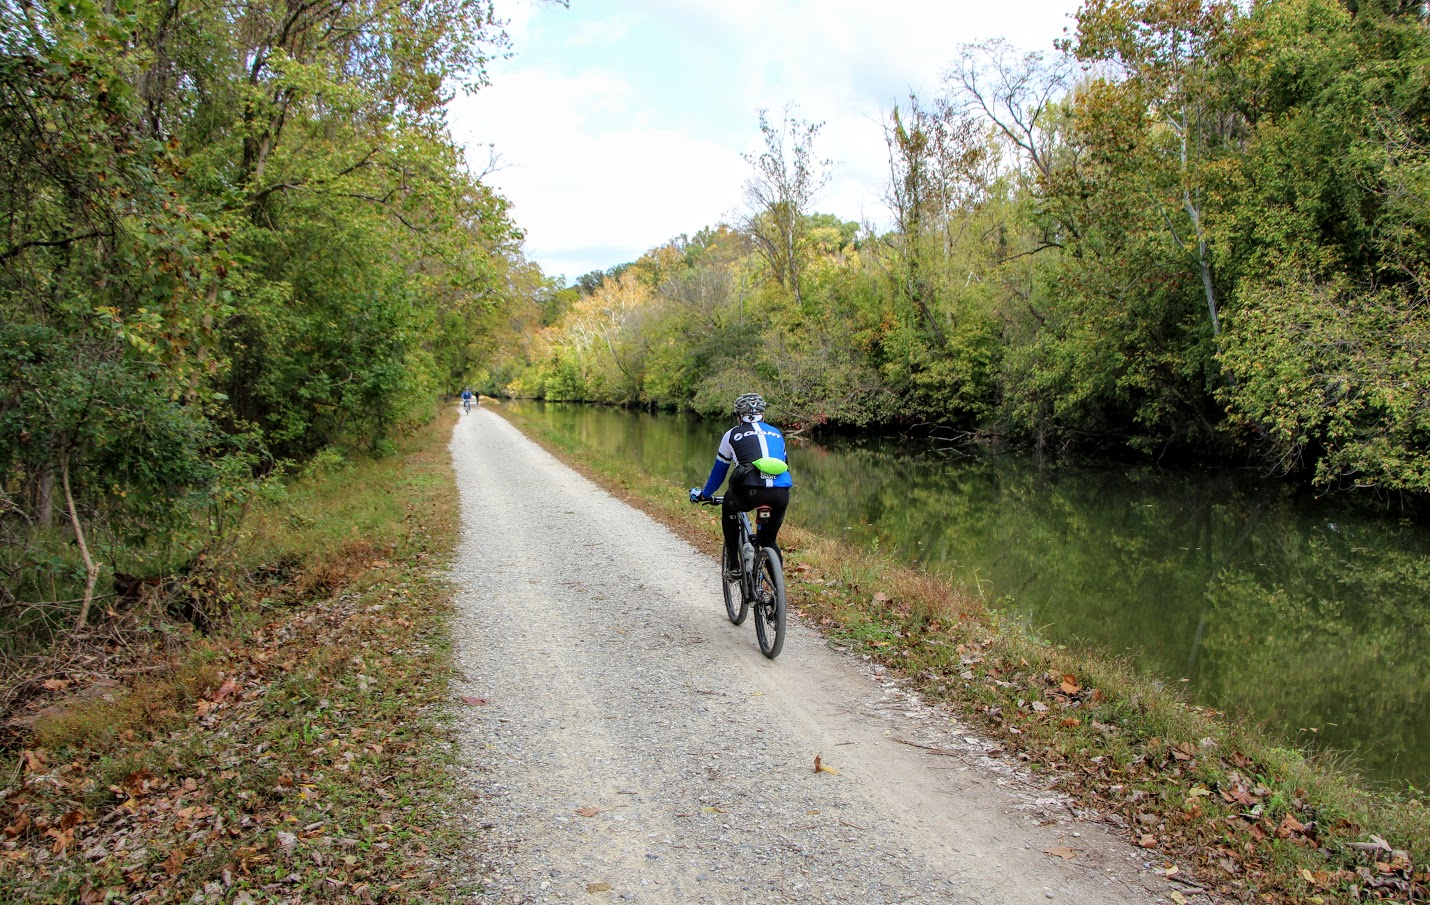 c&o-canal-3